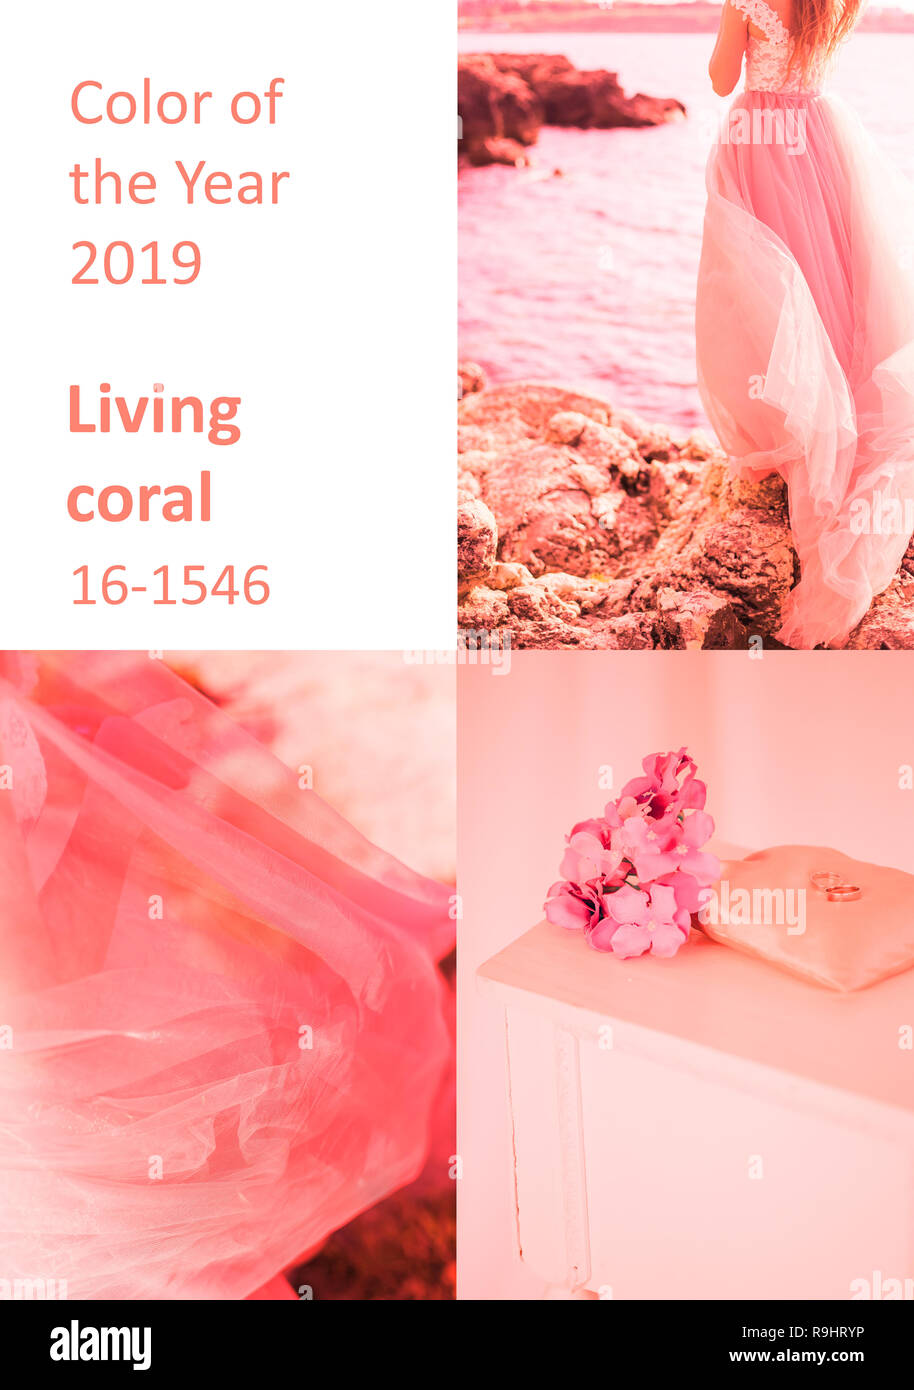 Color of the Year 2019 Living Coral inscription. New trends, collage of photos of coral shade - Stock Image